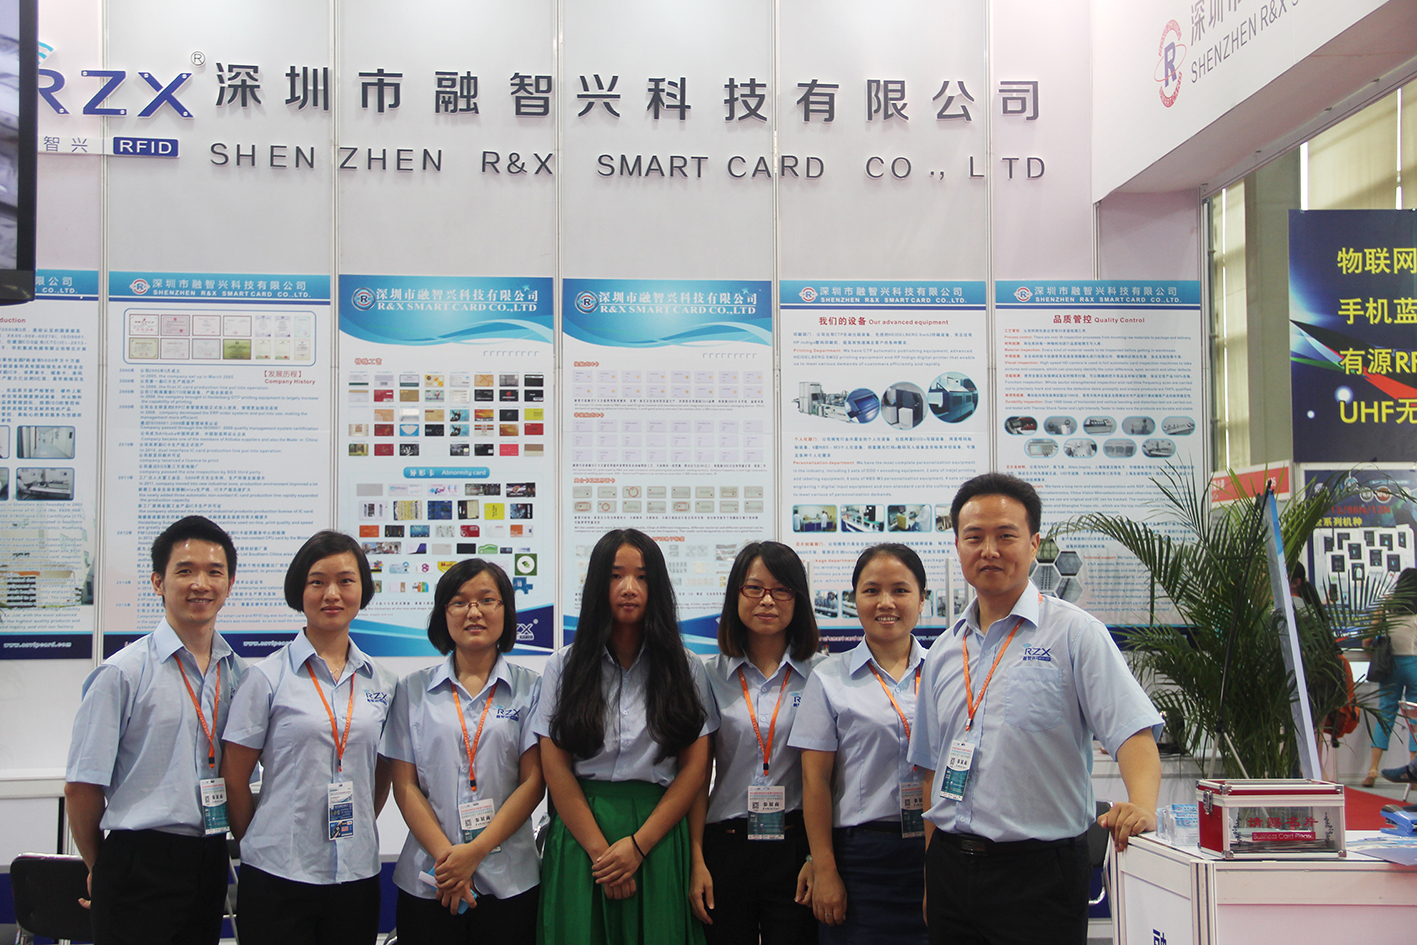 R&X attended the 7thChinaInternational Internet of Things Technologies and Application Exhibitionsuccessfully